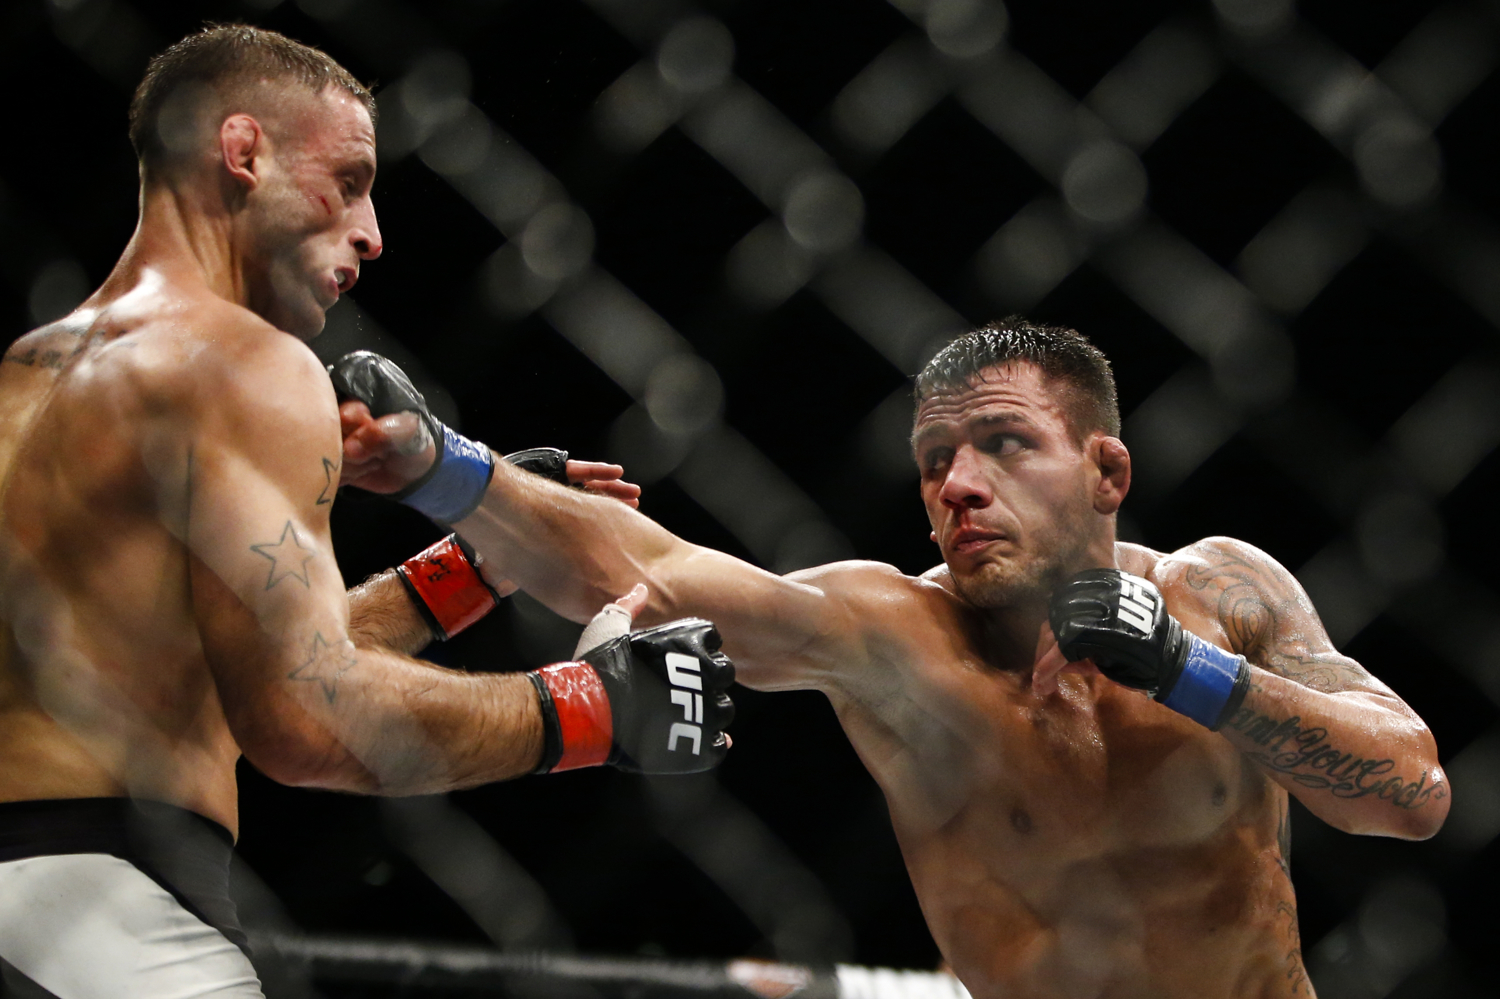 Rafael dos Anjos (R) of Brazil punches Tarec Saffiedine of Belgium during their welterweight bout at the UFC Fight Night at the Singapore Indoor Stadium on June 17, 2017.